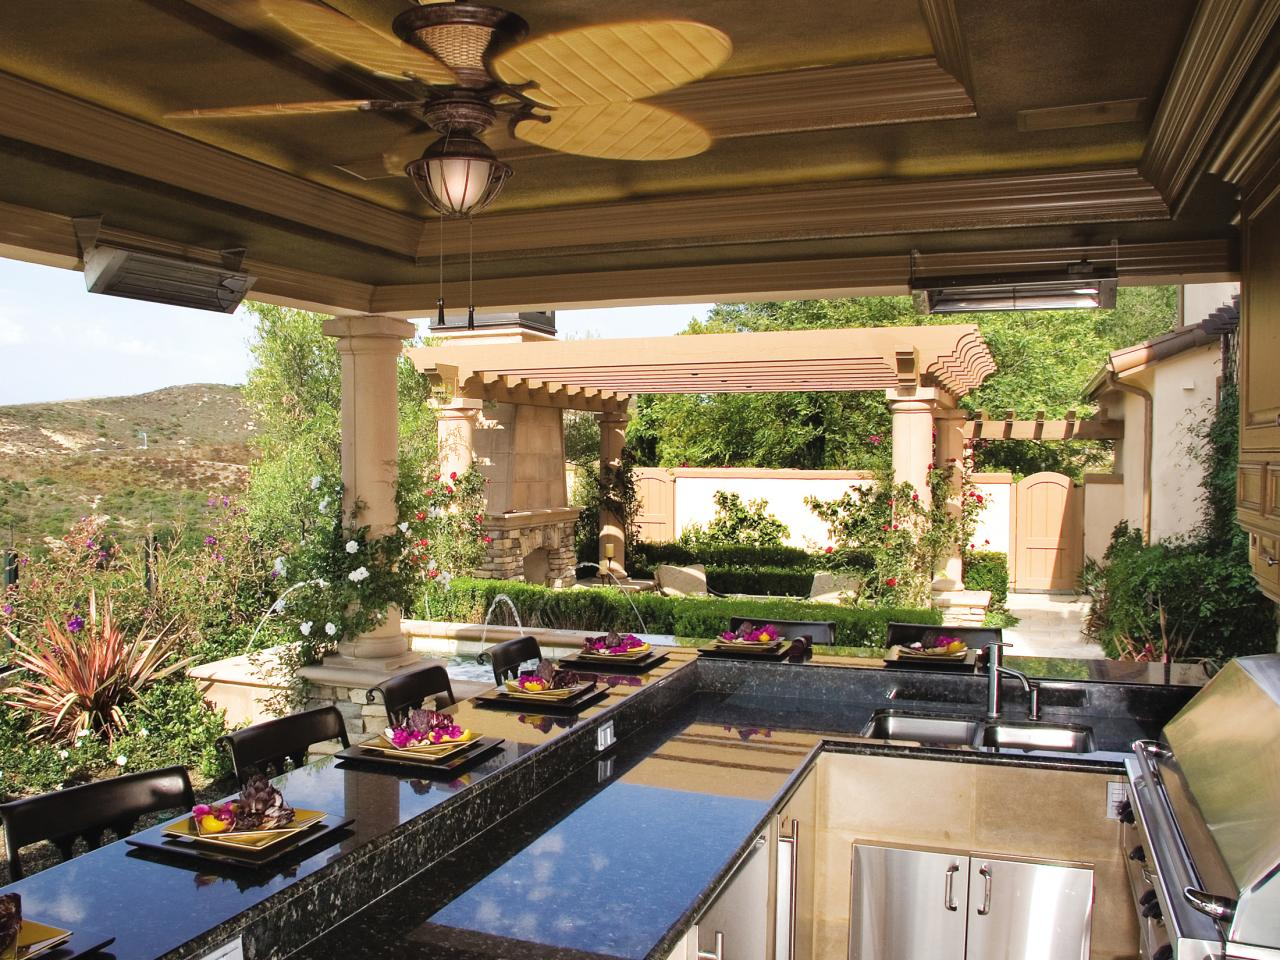 Outdoor Kitchens Designs outdoor kitchen countertops options | hgtv